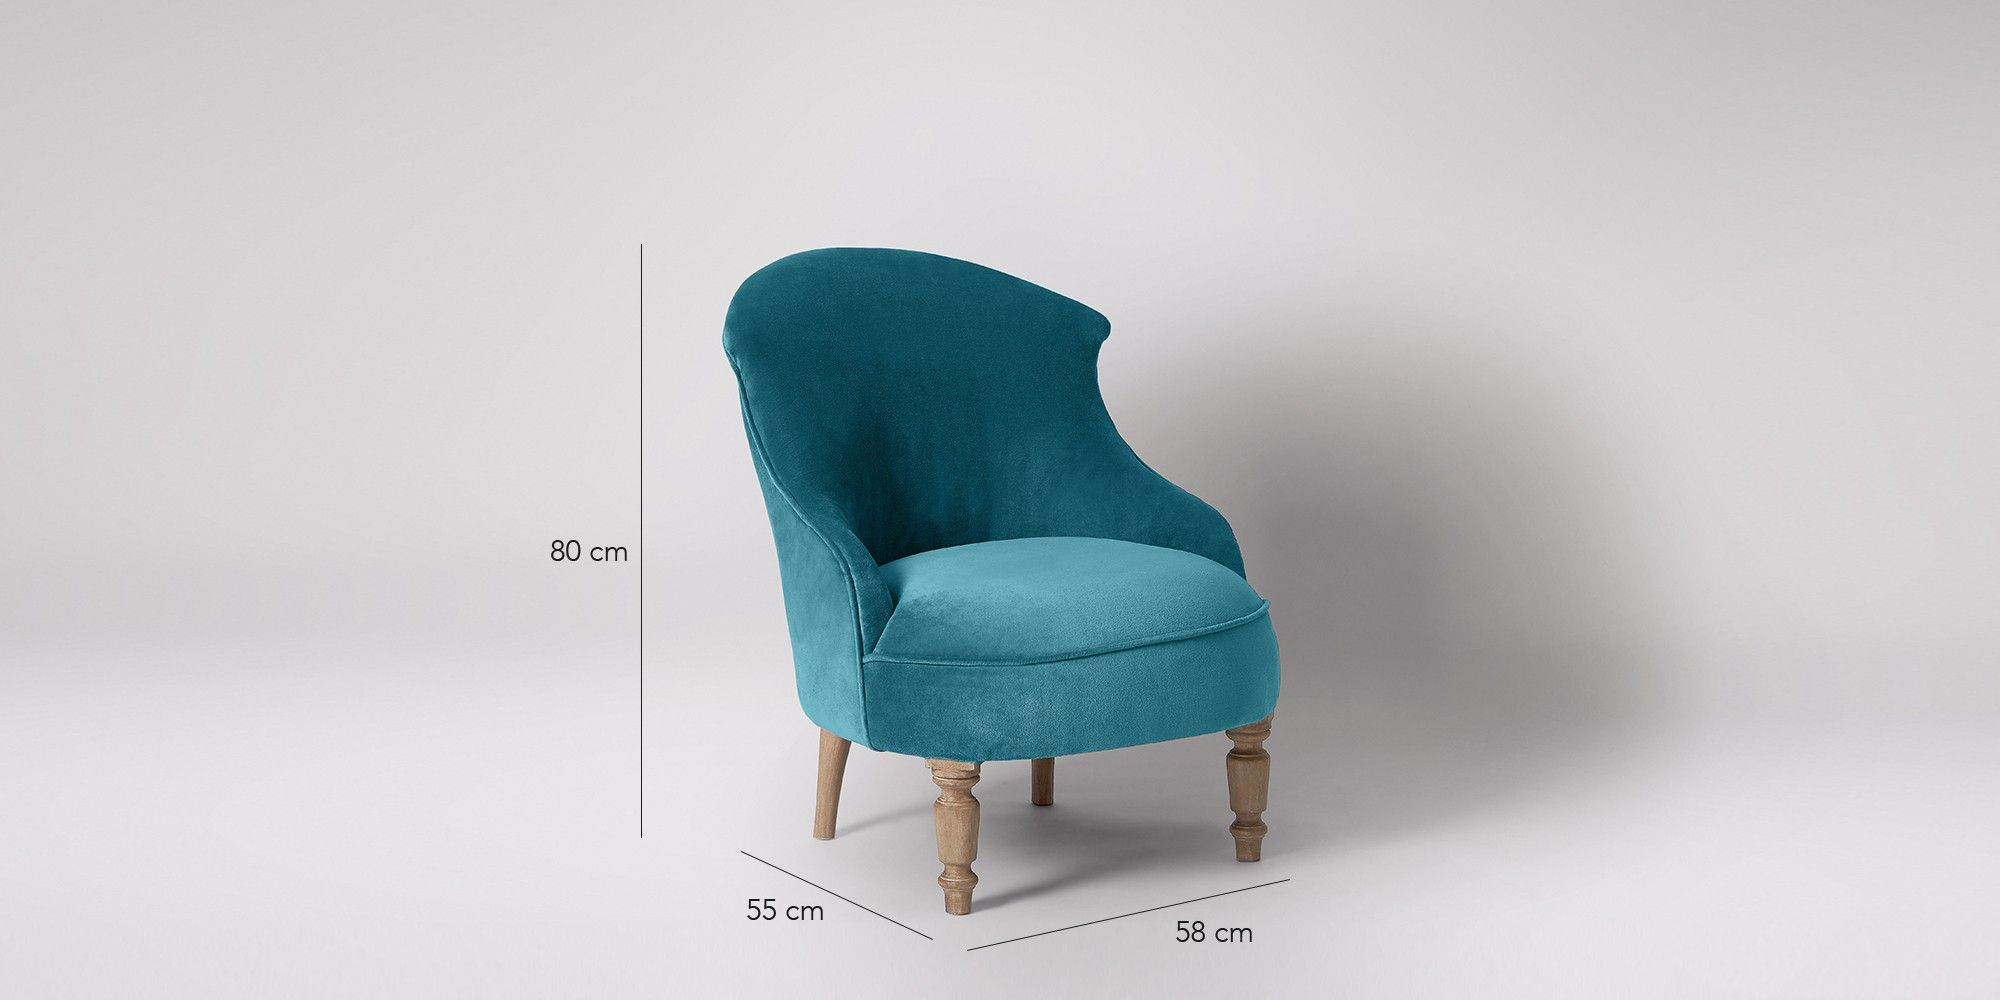 Swoon Lounge Chair Price